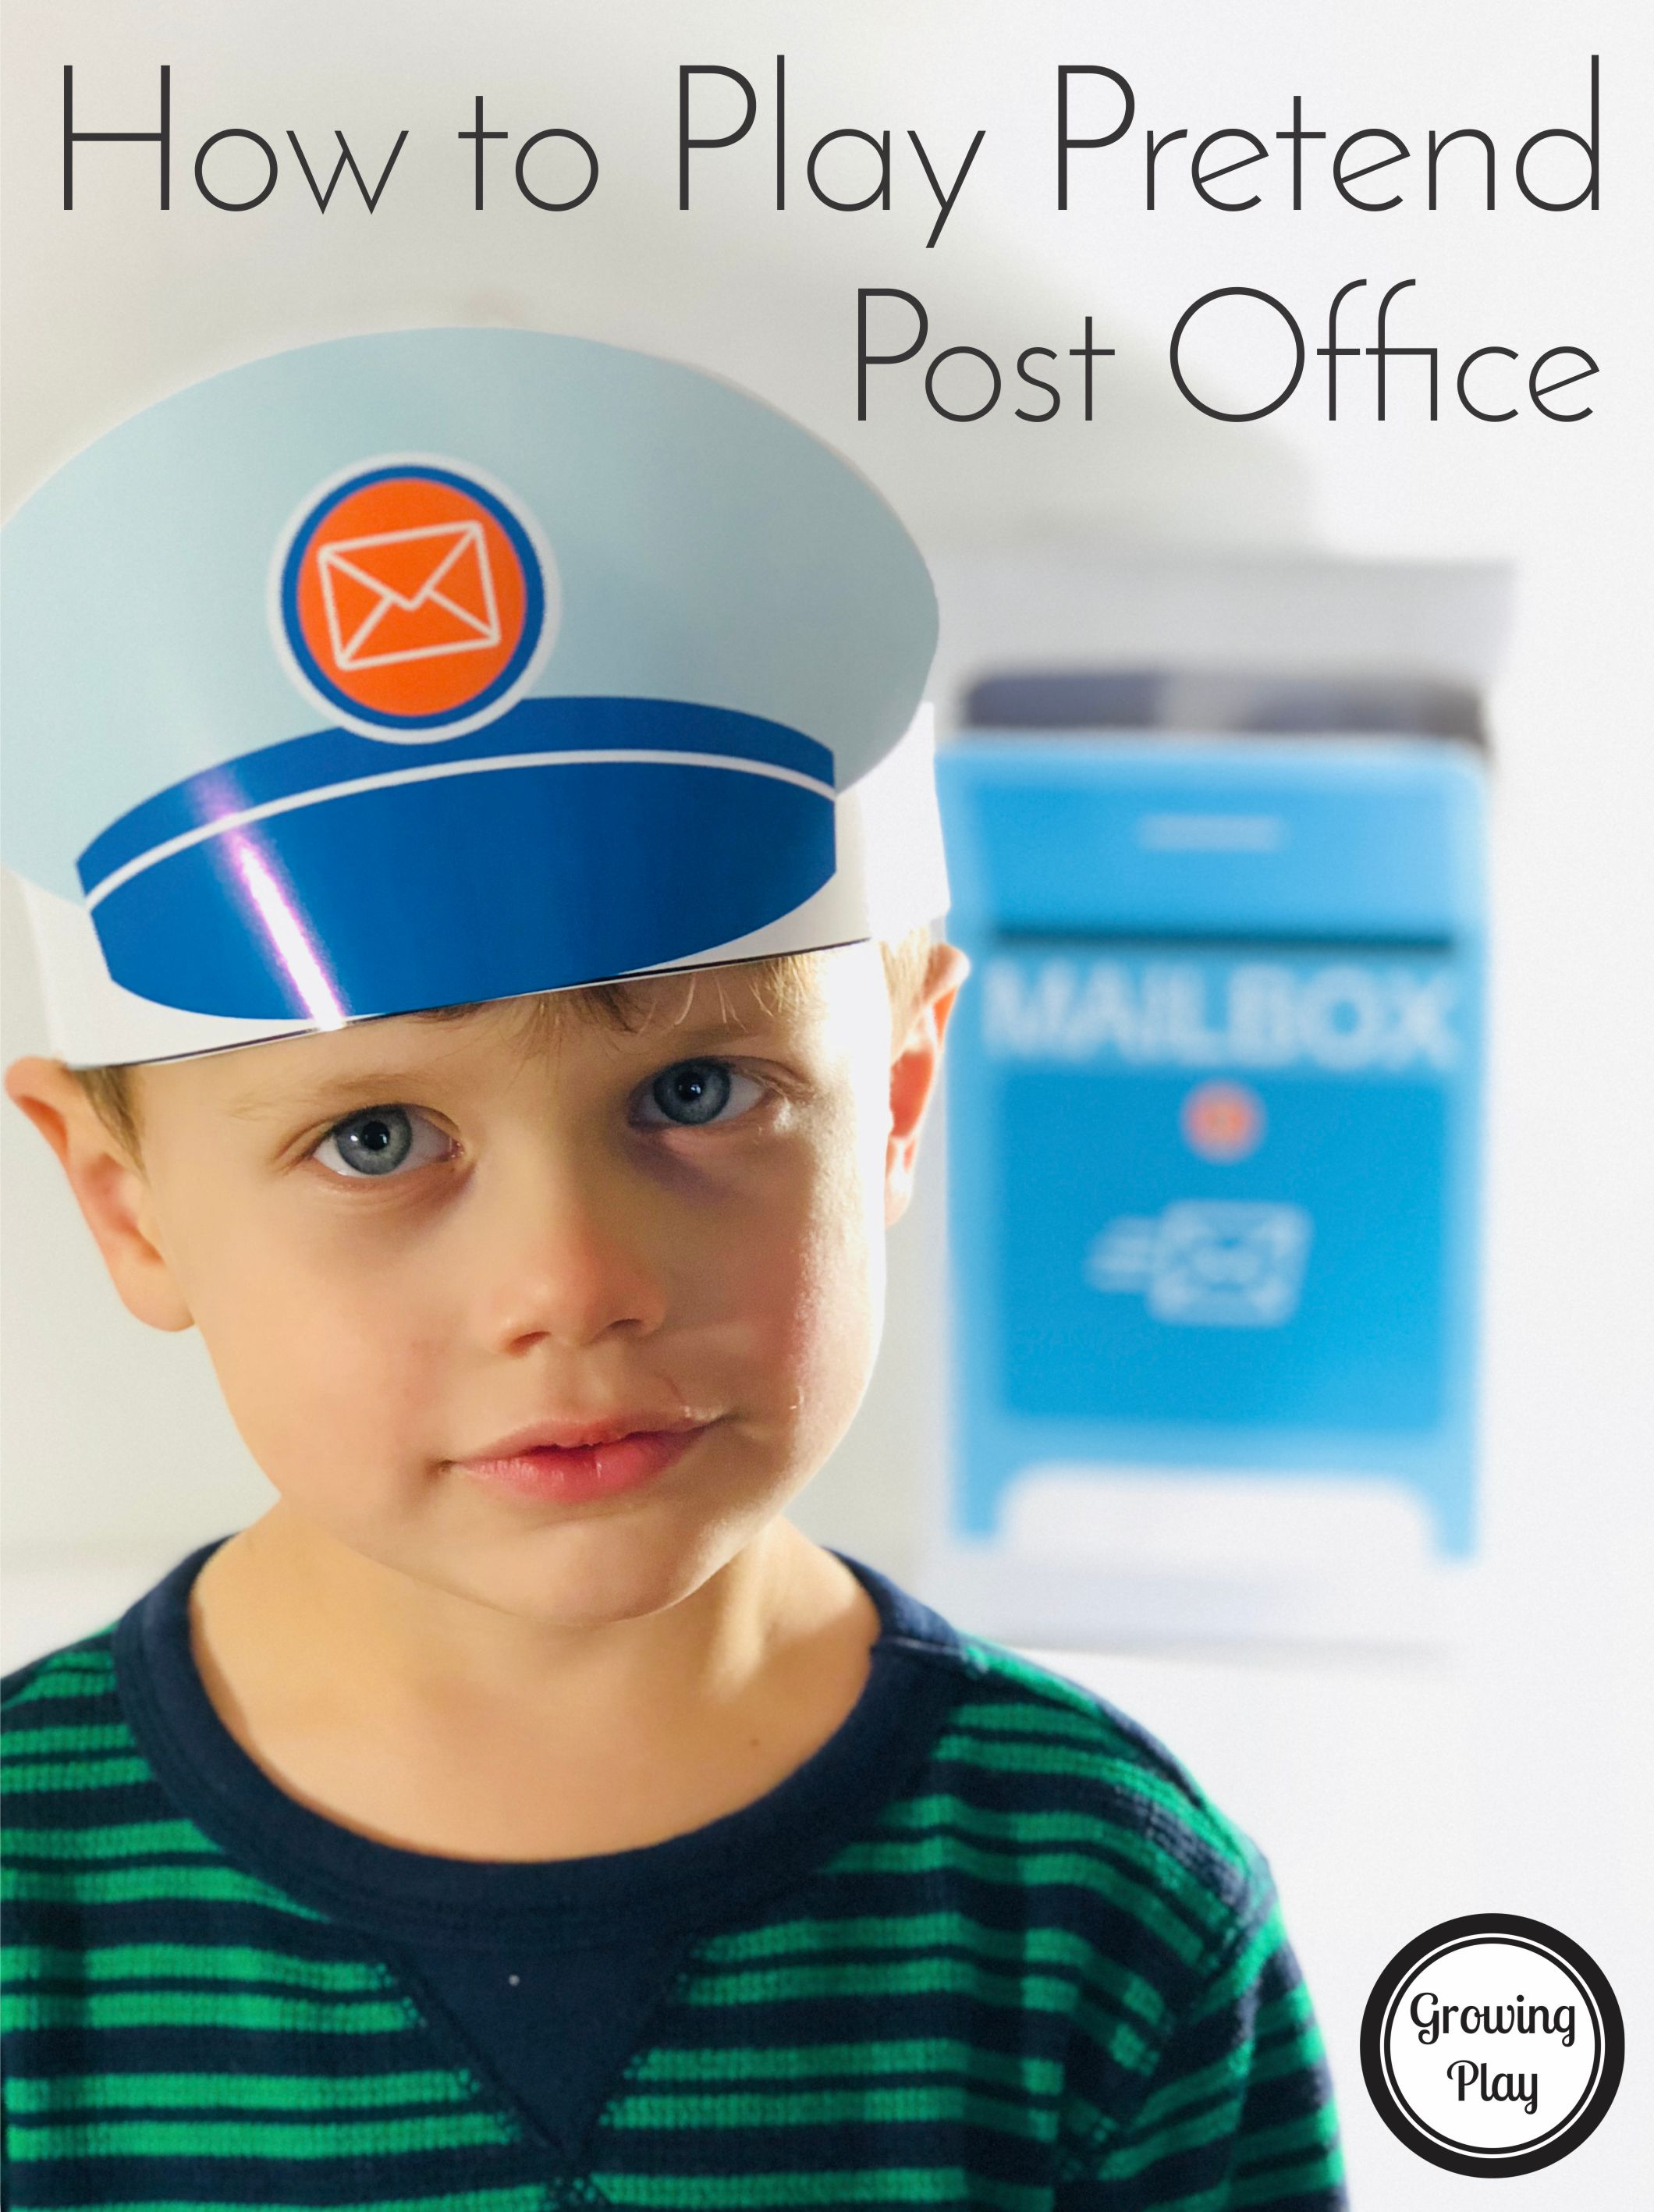 How to Play Pretend Post Office